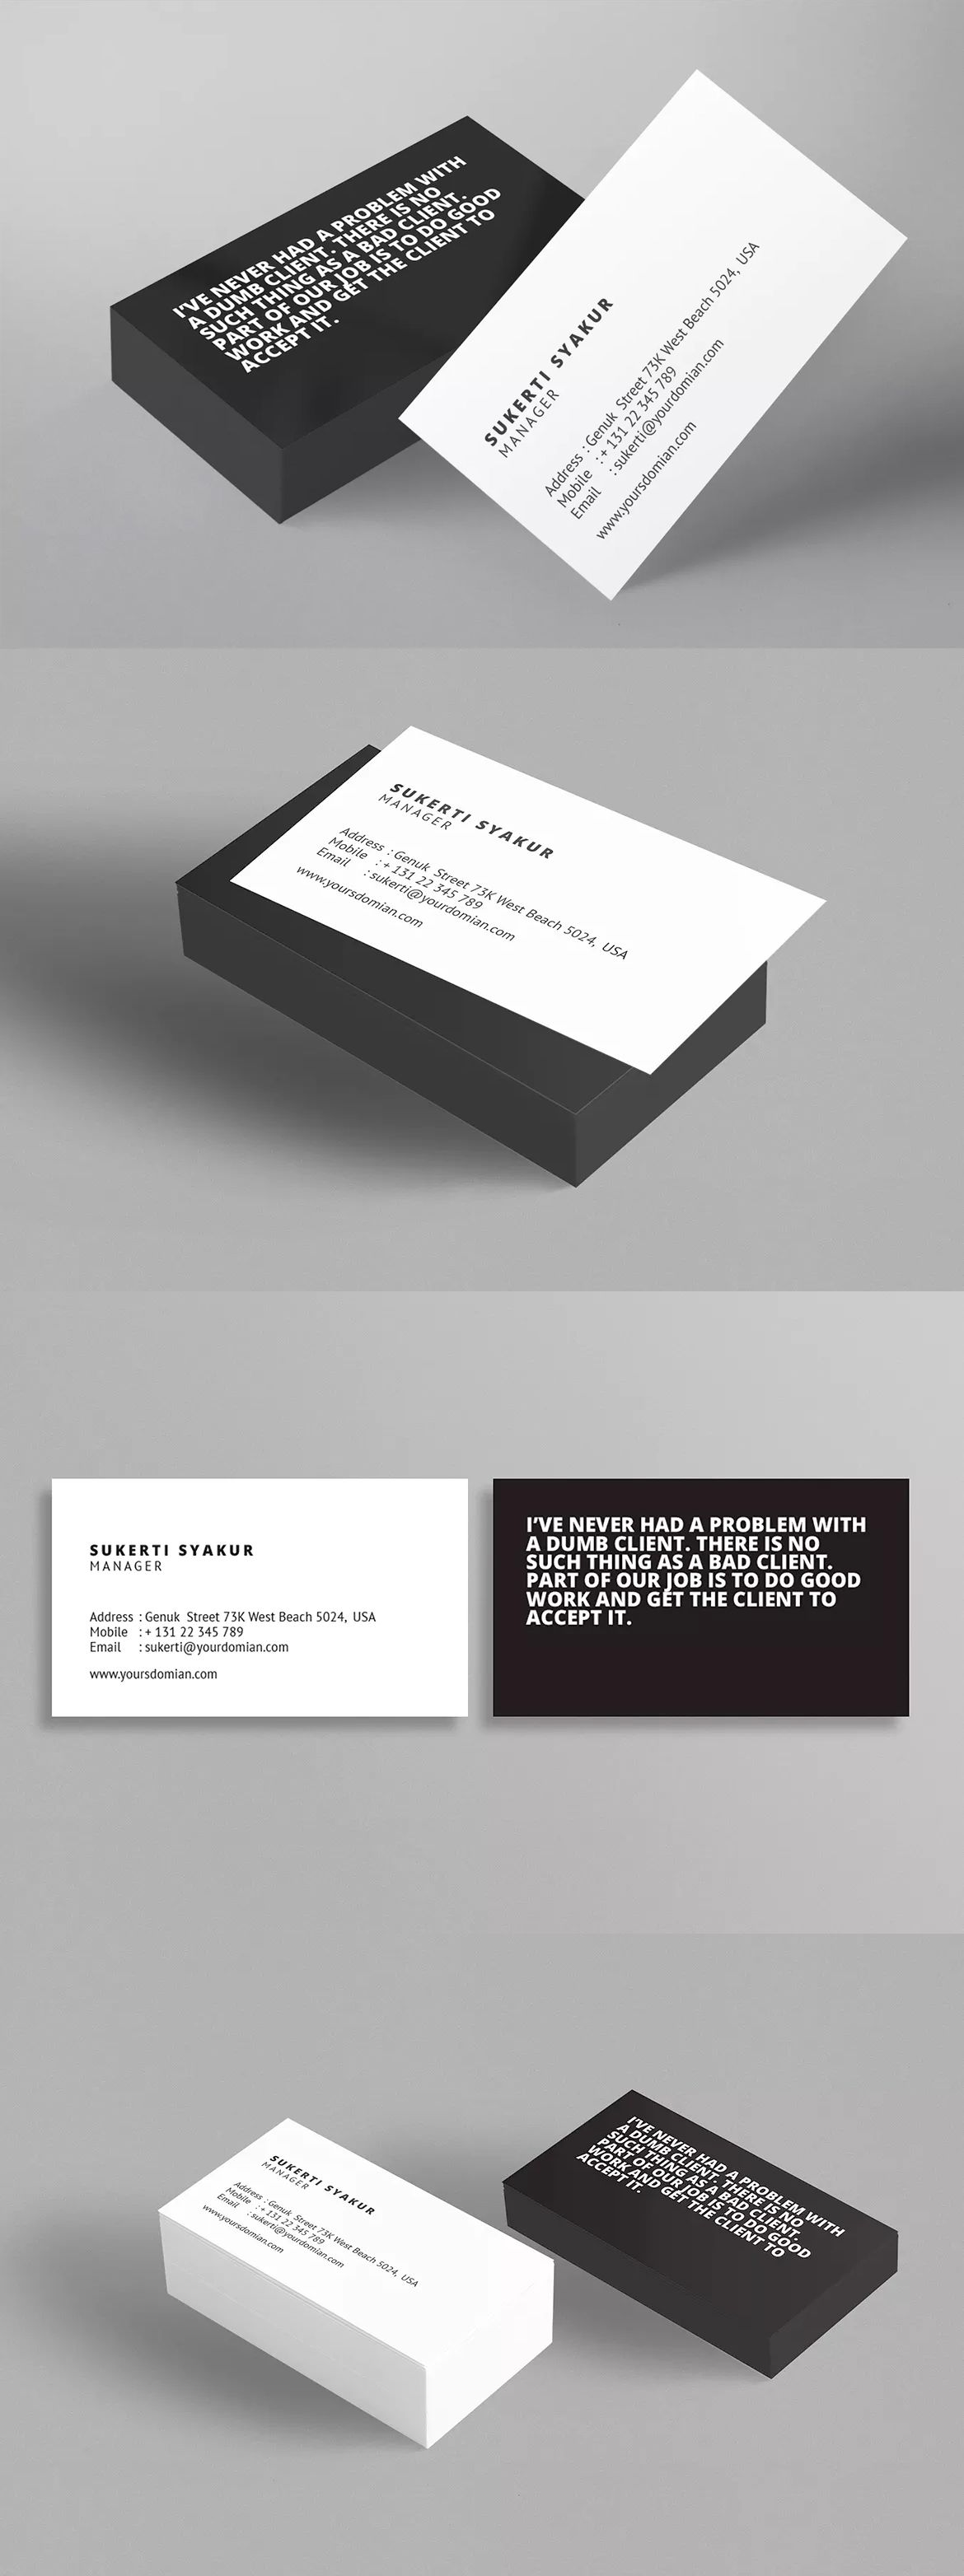 Horizontal Business Card Template InDesign INDD